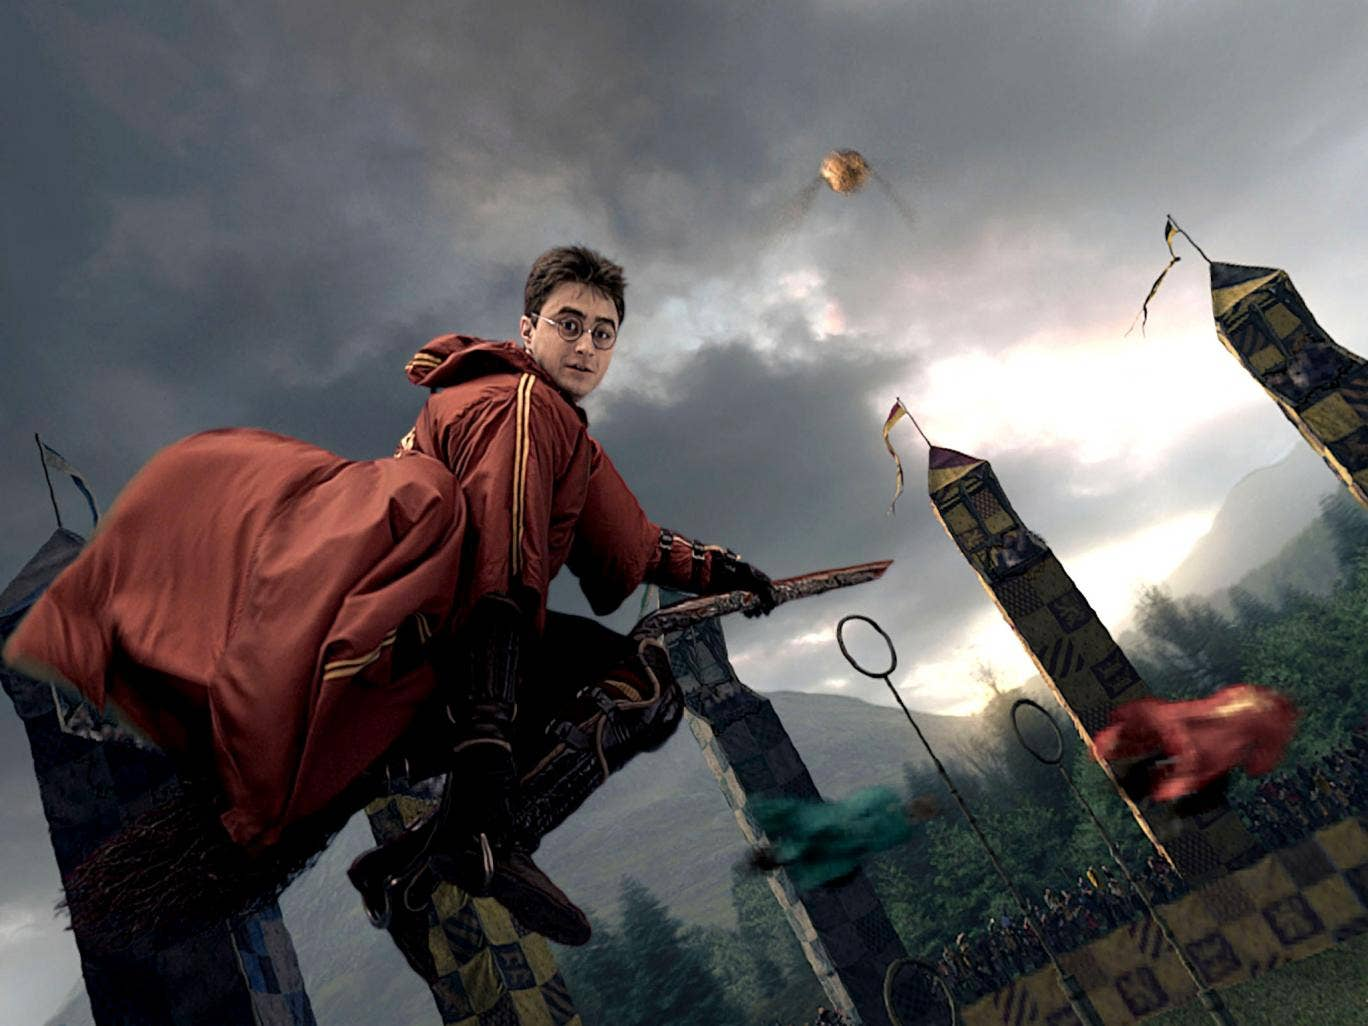 Quidditch as seen in the Harry Potter movies